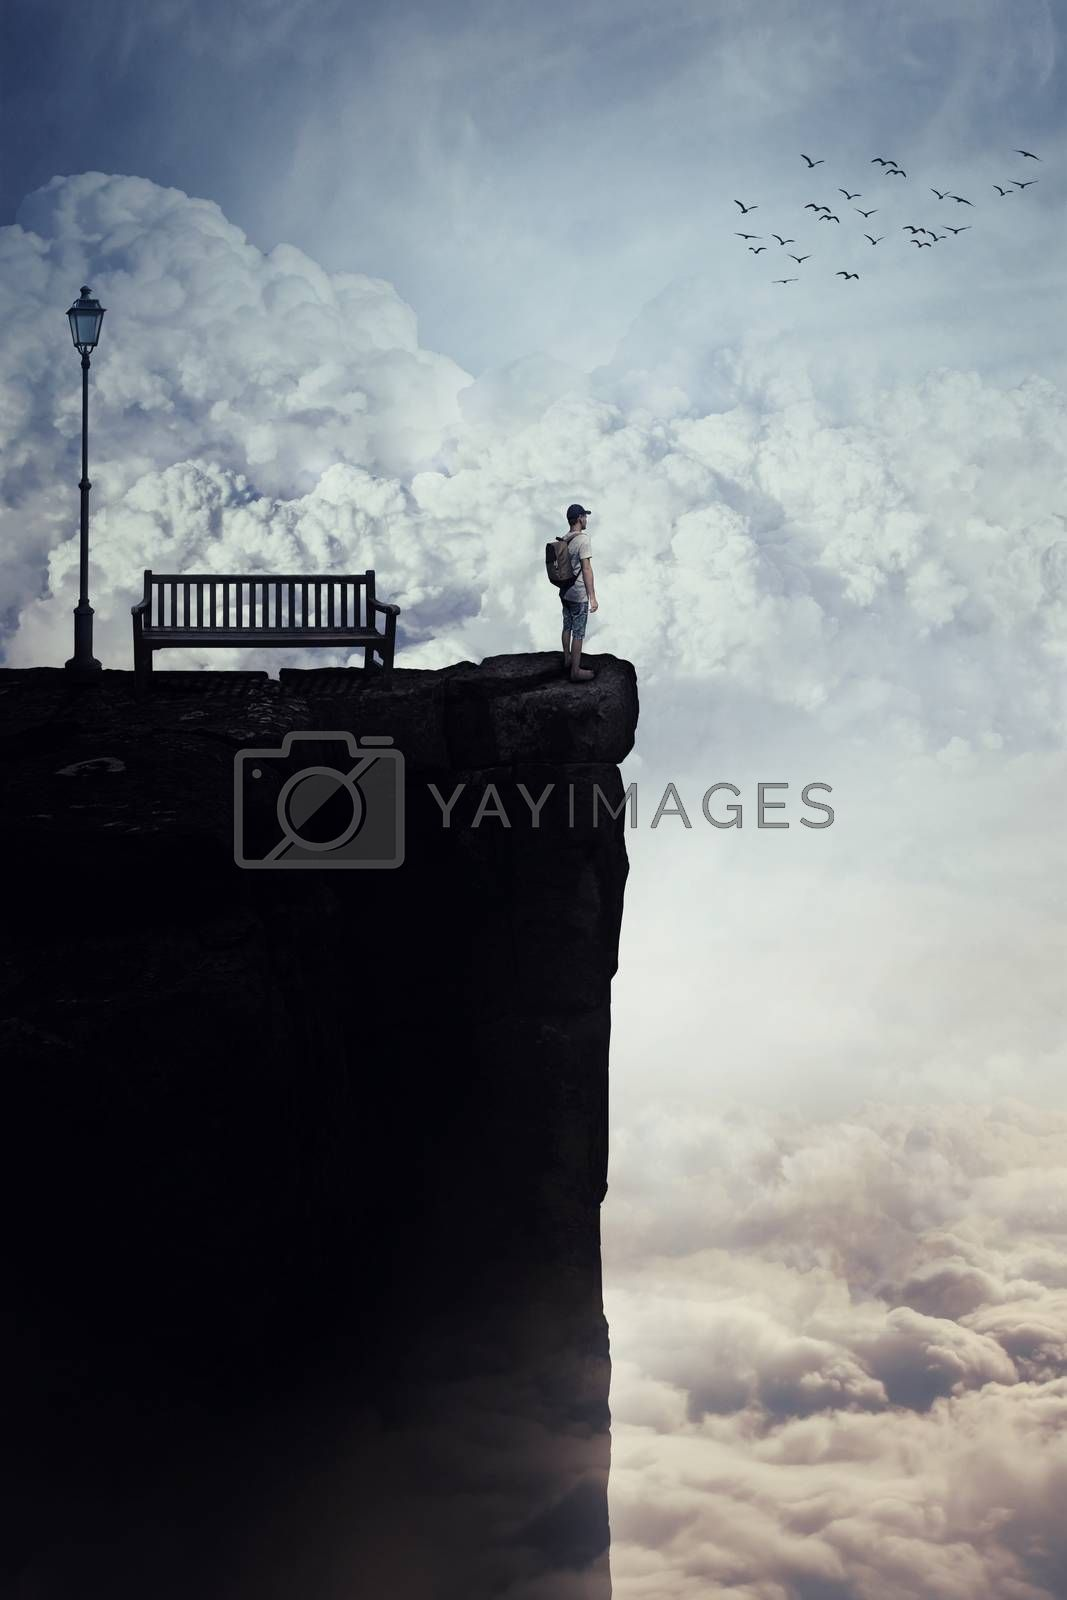 Inspirational imaginary view as a young boy with a bag in his back stand on the peak of a cliff above clouds, looking at the horizon, near a bench and a street lamp. Life journey opportunity concept.